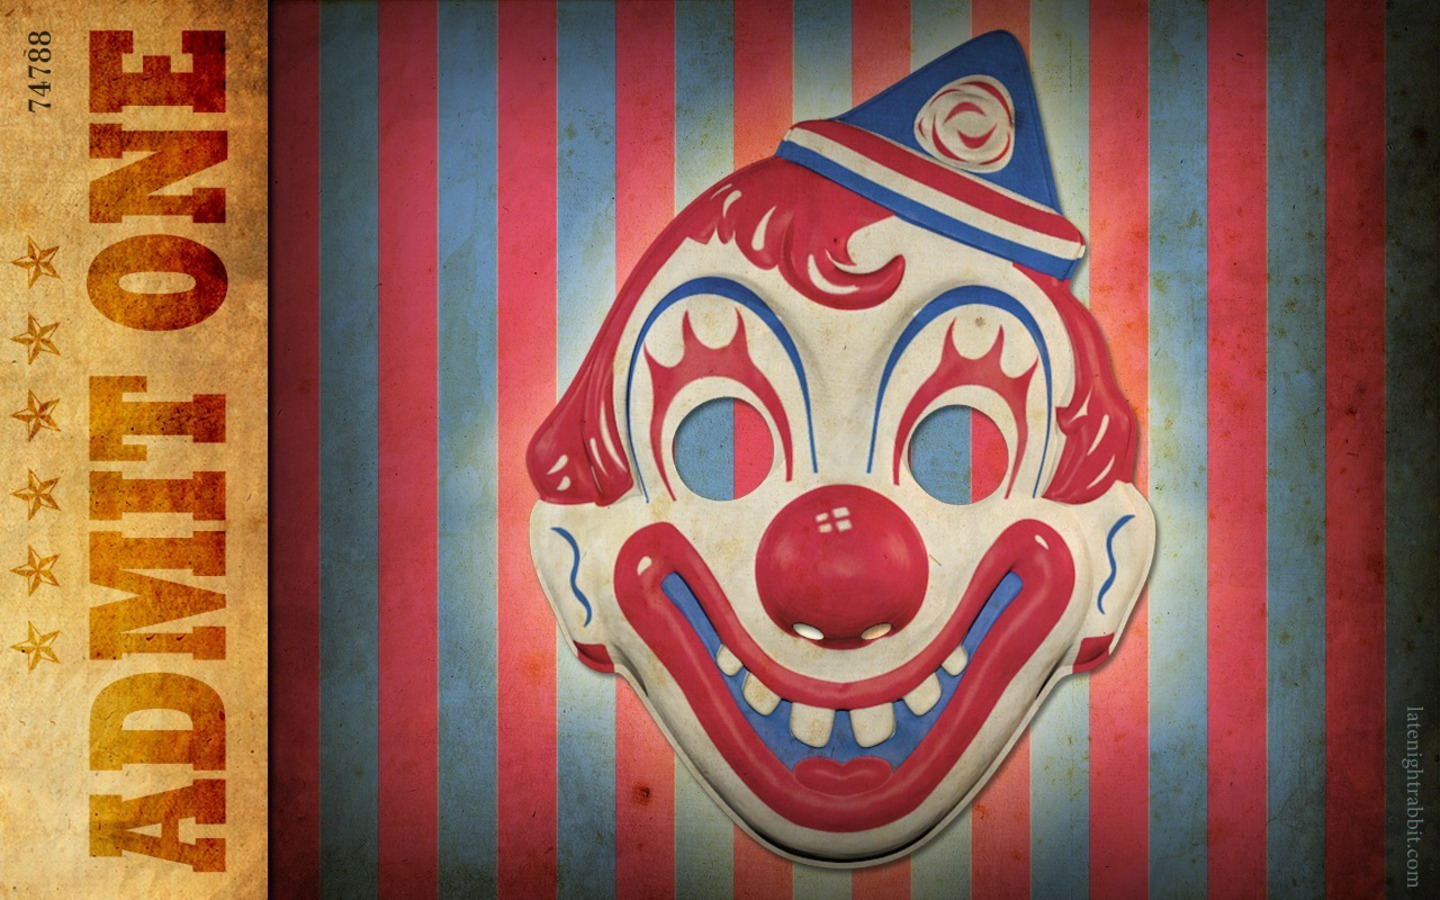 circus and carnivals images circus clown hd wallpaper and